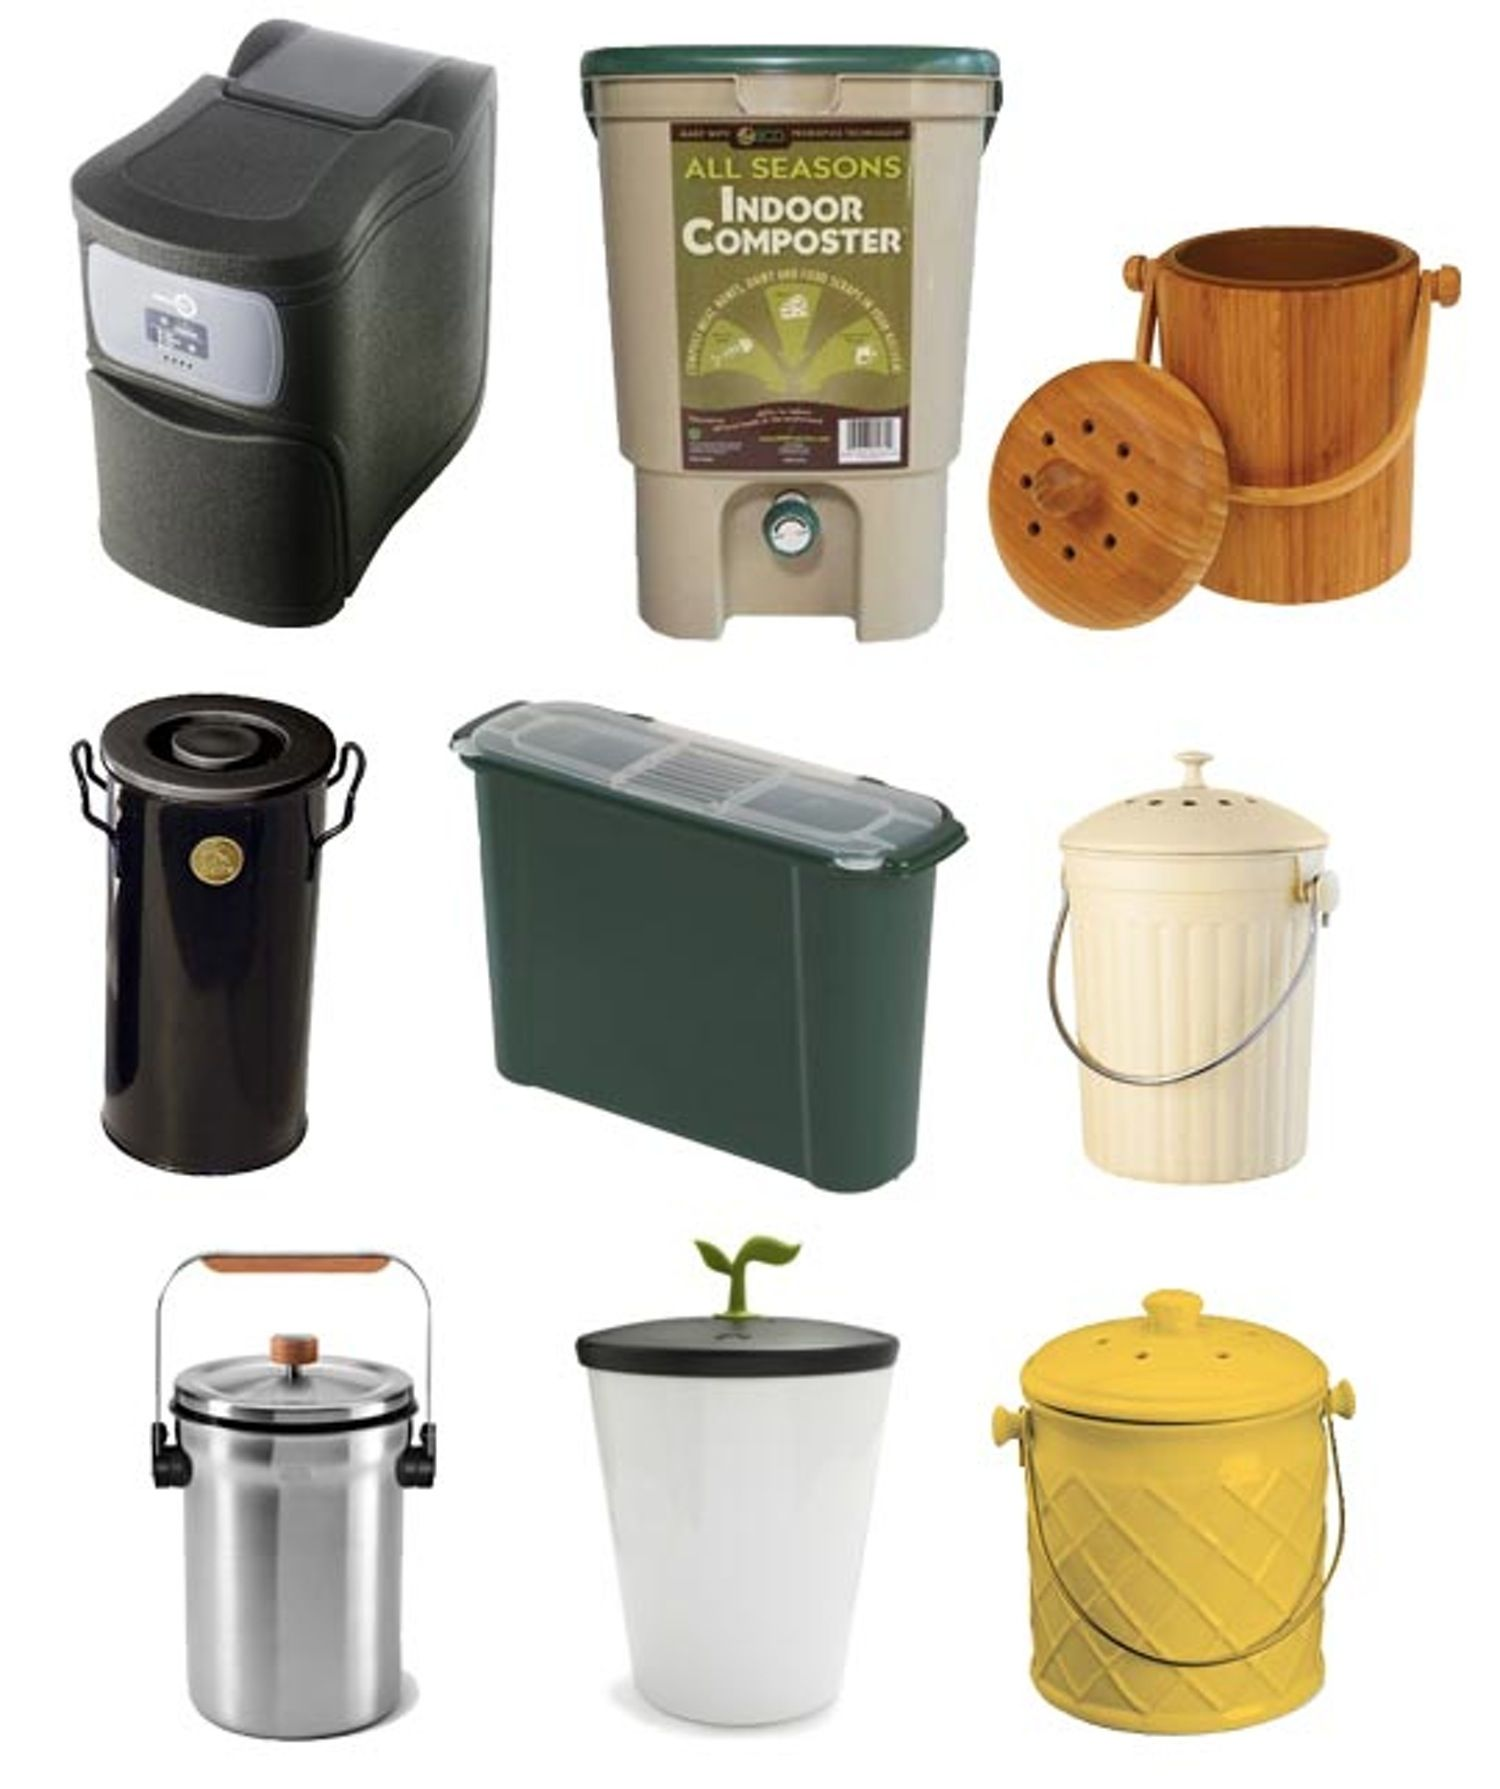 Best Small Space Compost Bins 2012 | Composting, Small spaces and ...